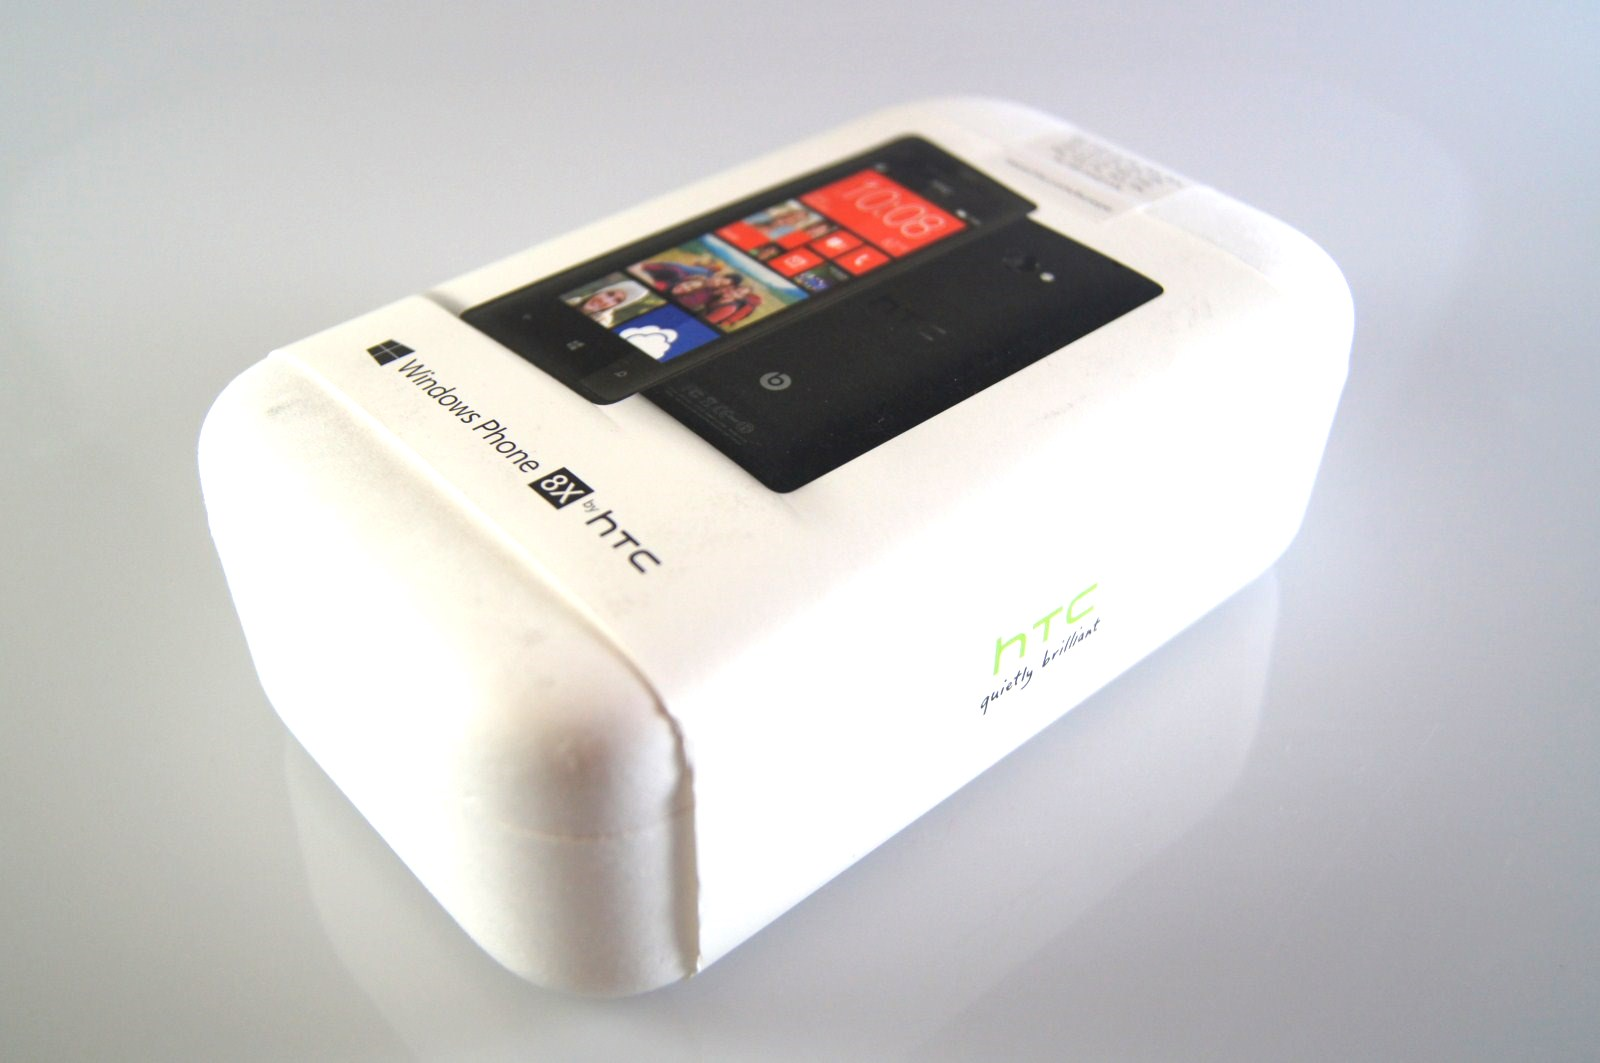 htc-windows-phone-8x-1.jpg